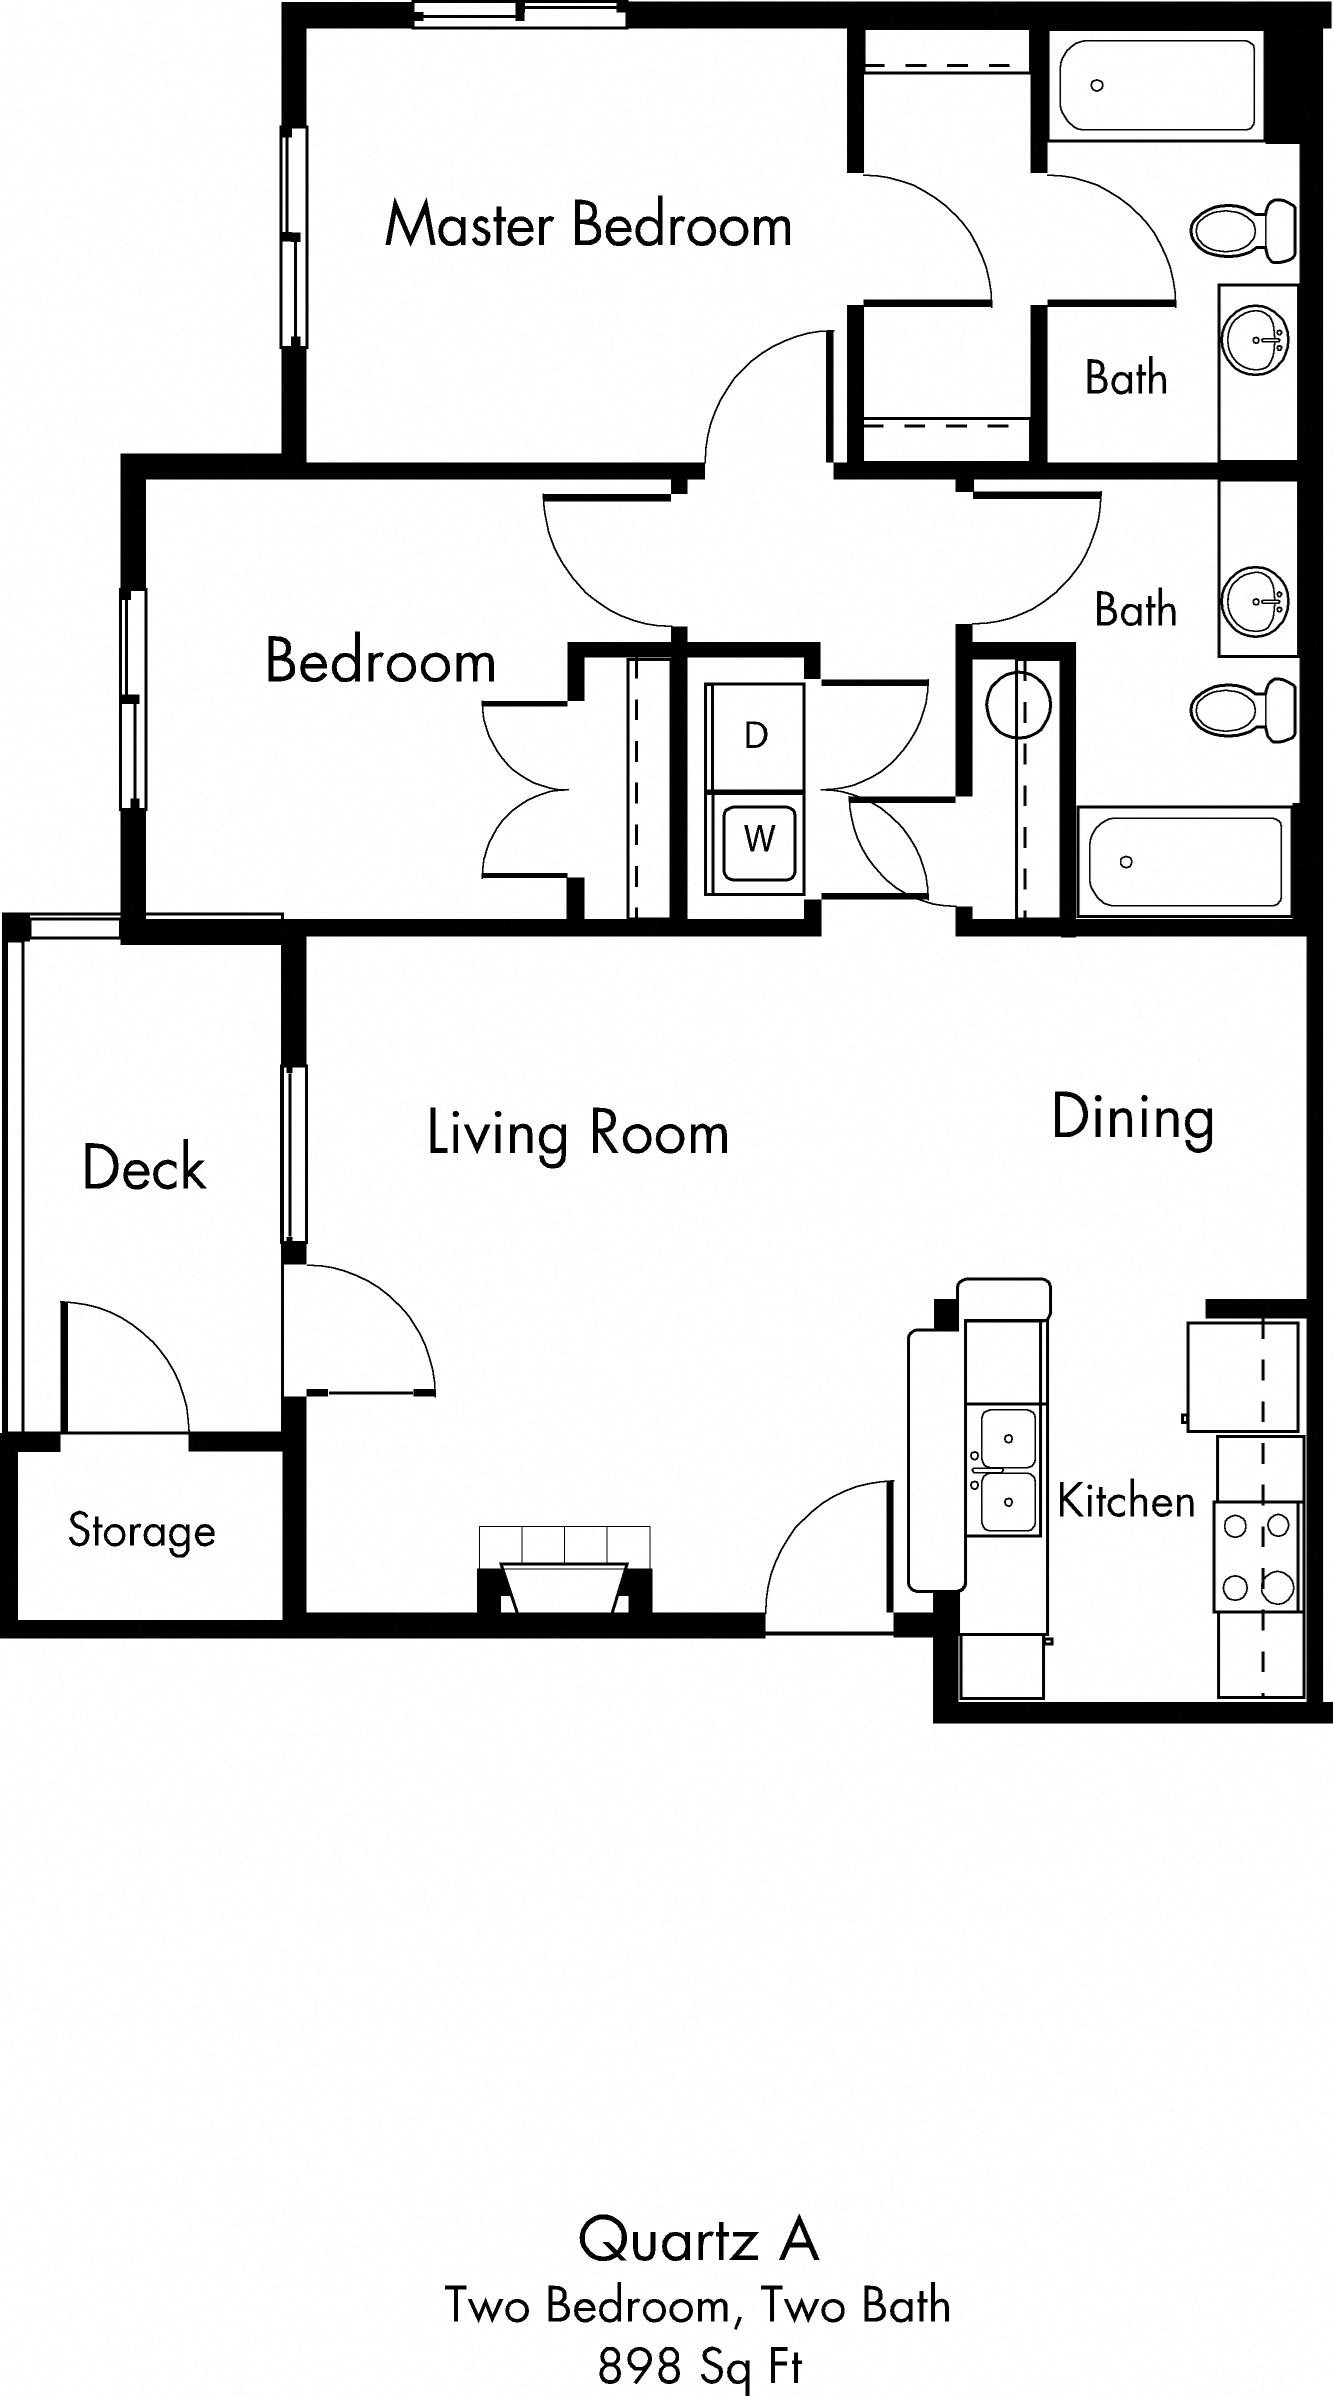 Quartz A Floor Plan 11